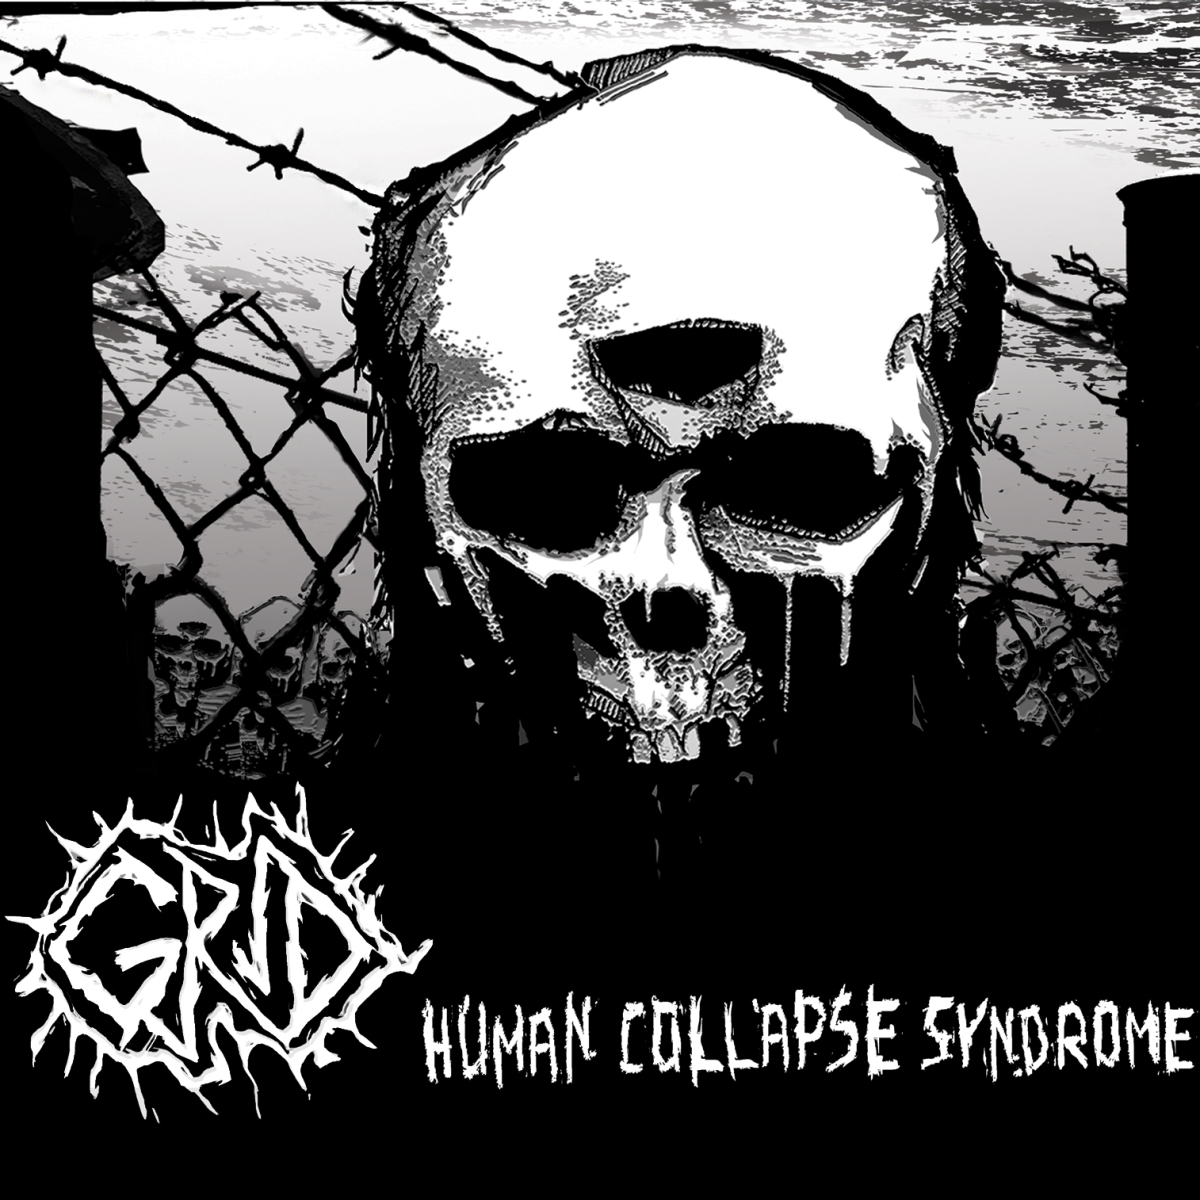 Grid – Human Collapse Syndrome(Review)